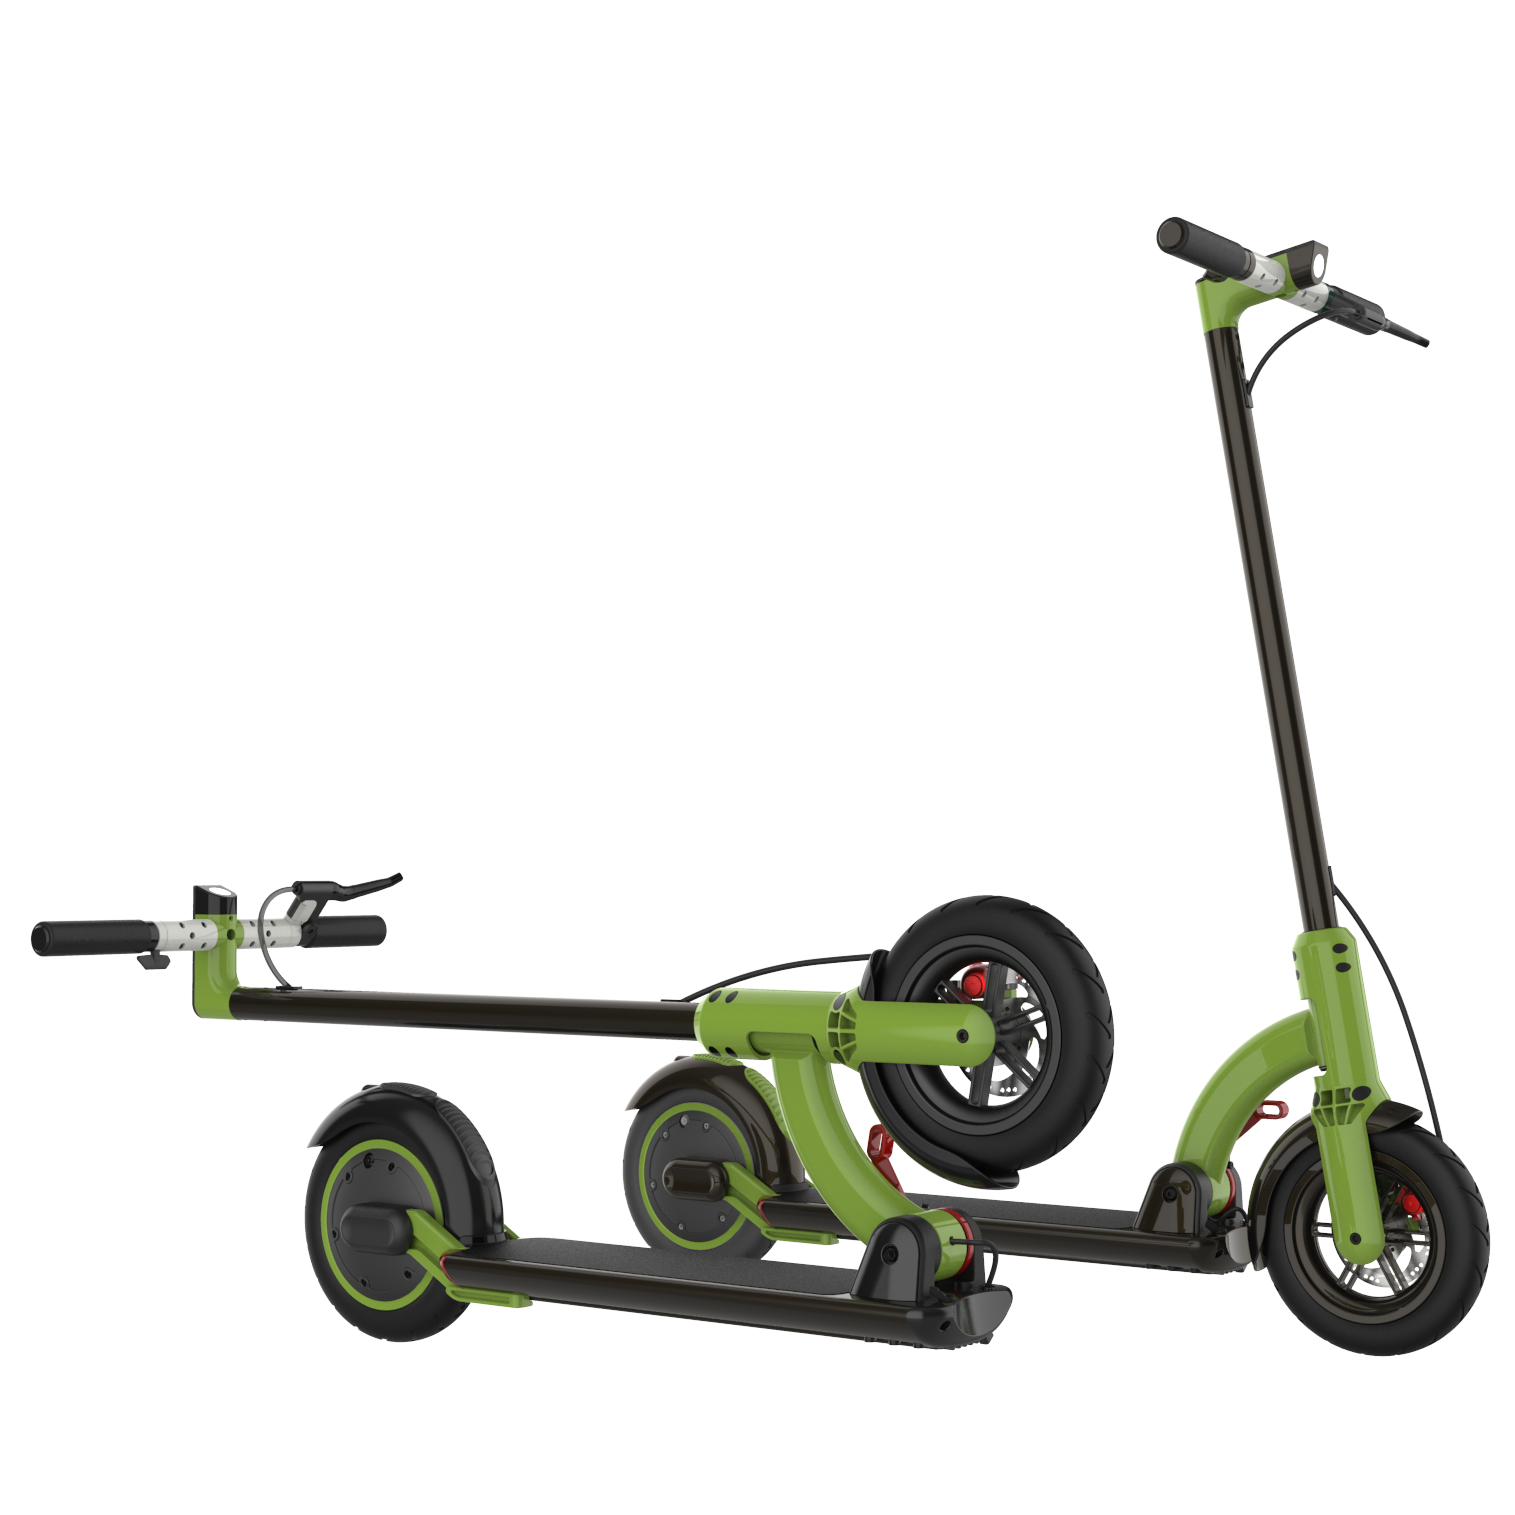 New Adult Smart Two Wheel Stand Up 2020 8.5inch electric Scooter